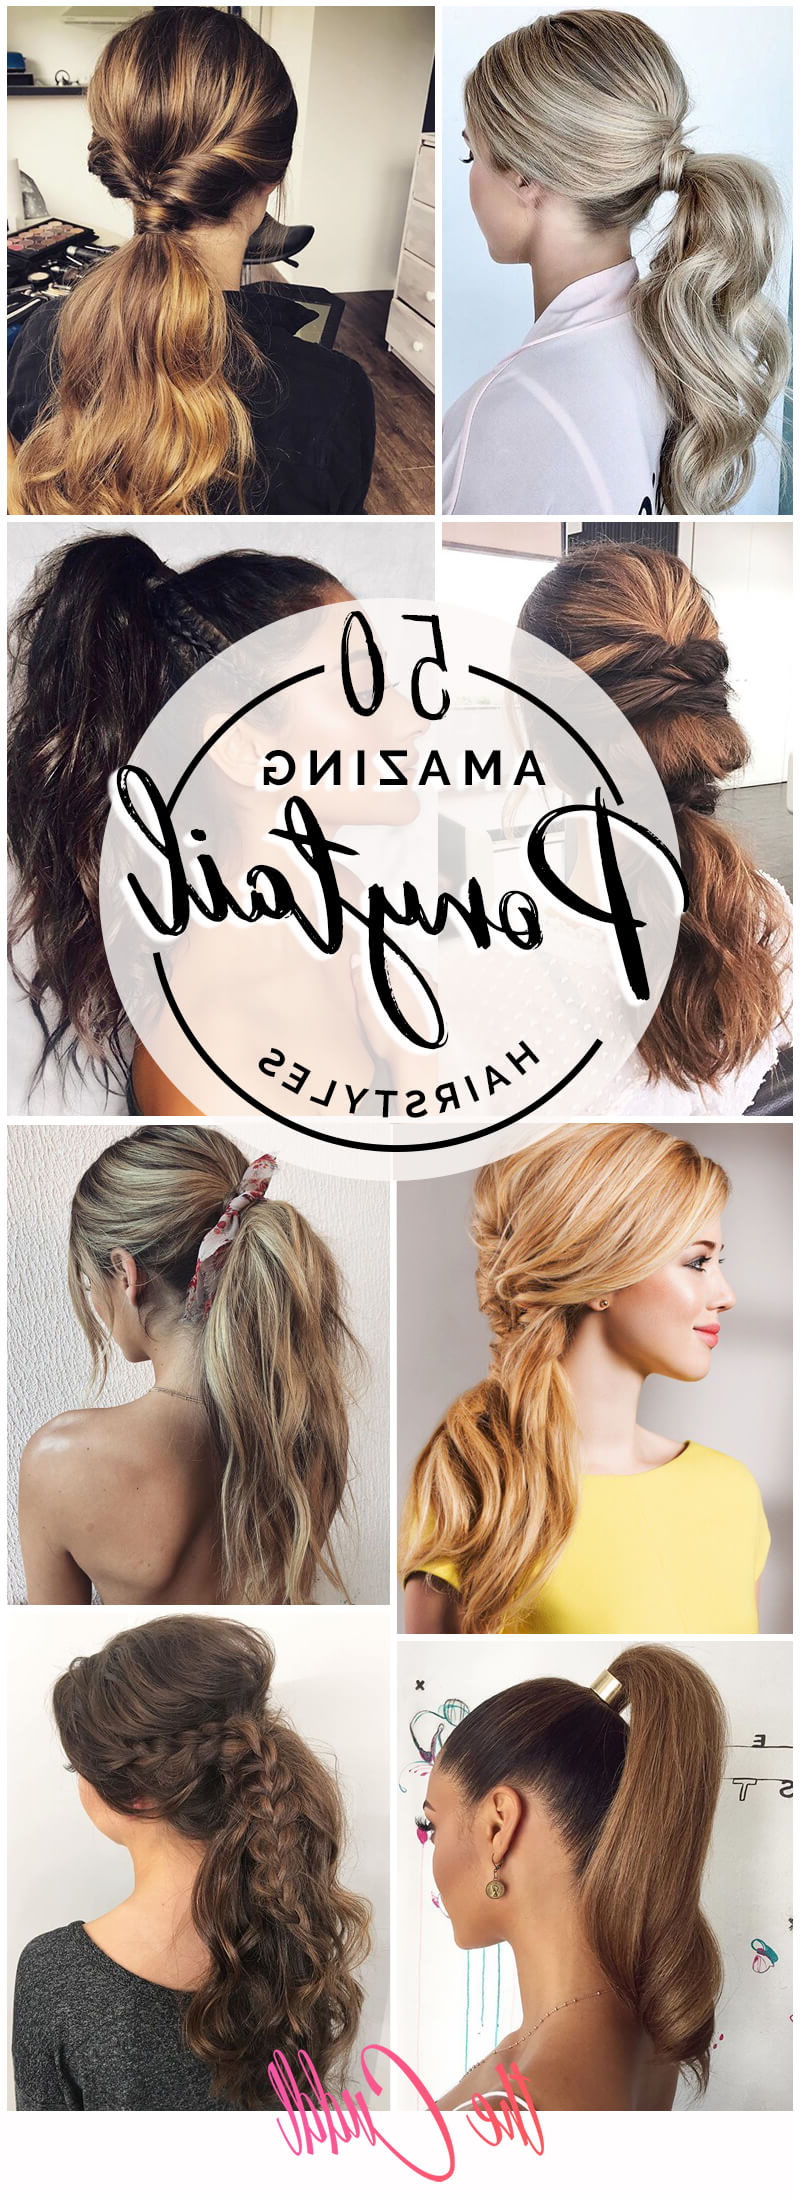 50 Best Ponytail Hairstyles To Update Your Updo In 2019 Throughout Most Current Pearl Crown Ponytail Hairstyles (Gallery 8 of 20)